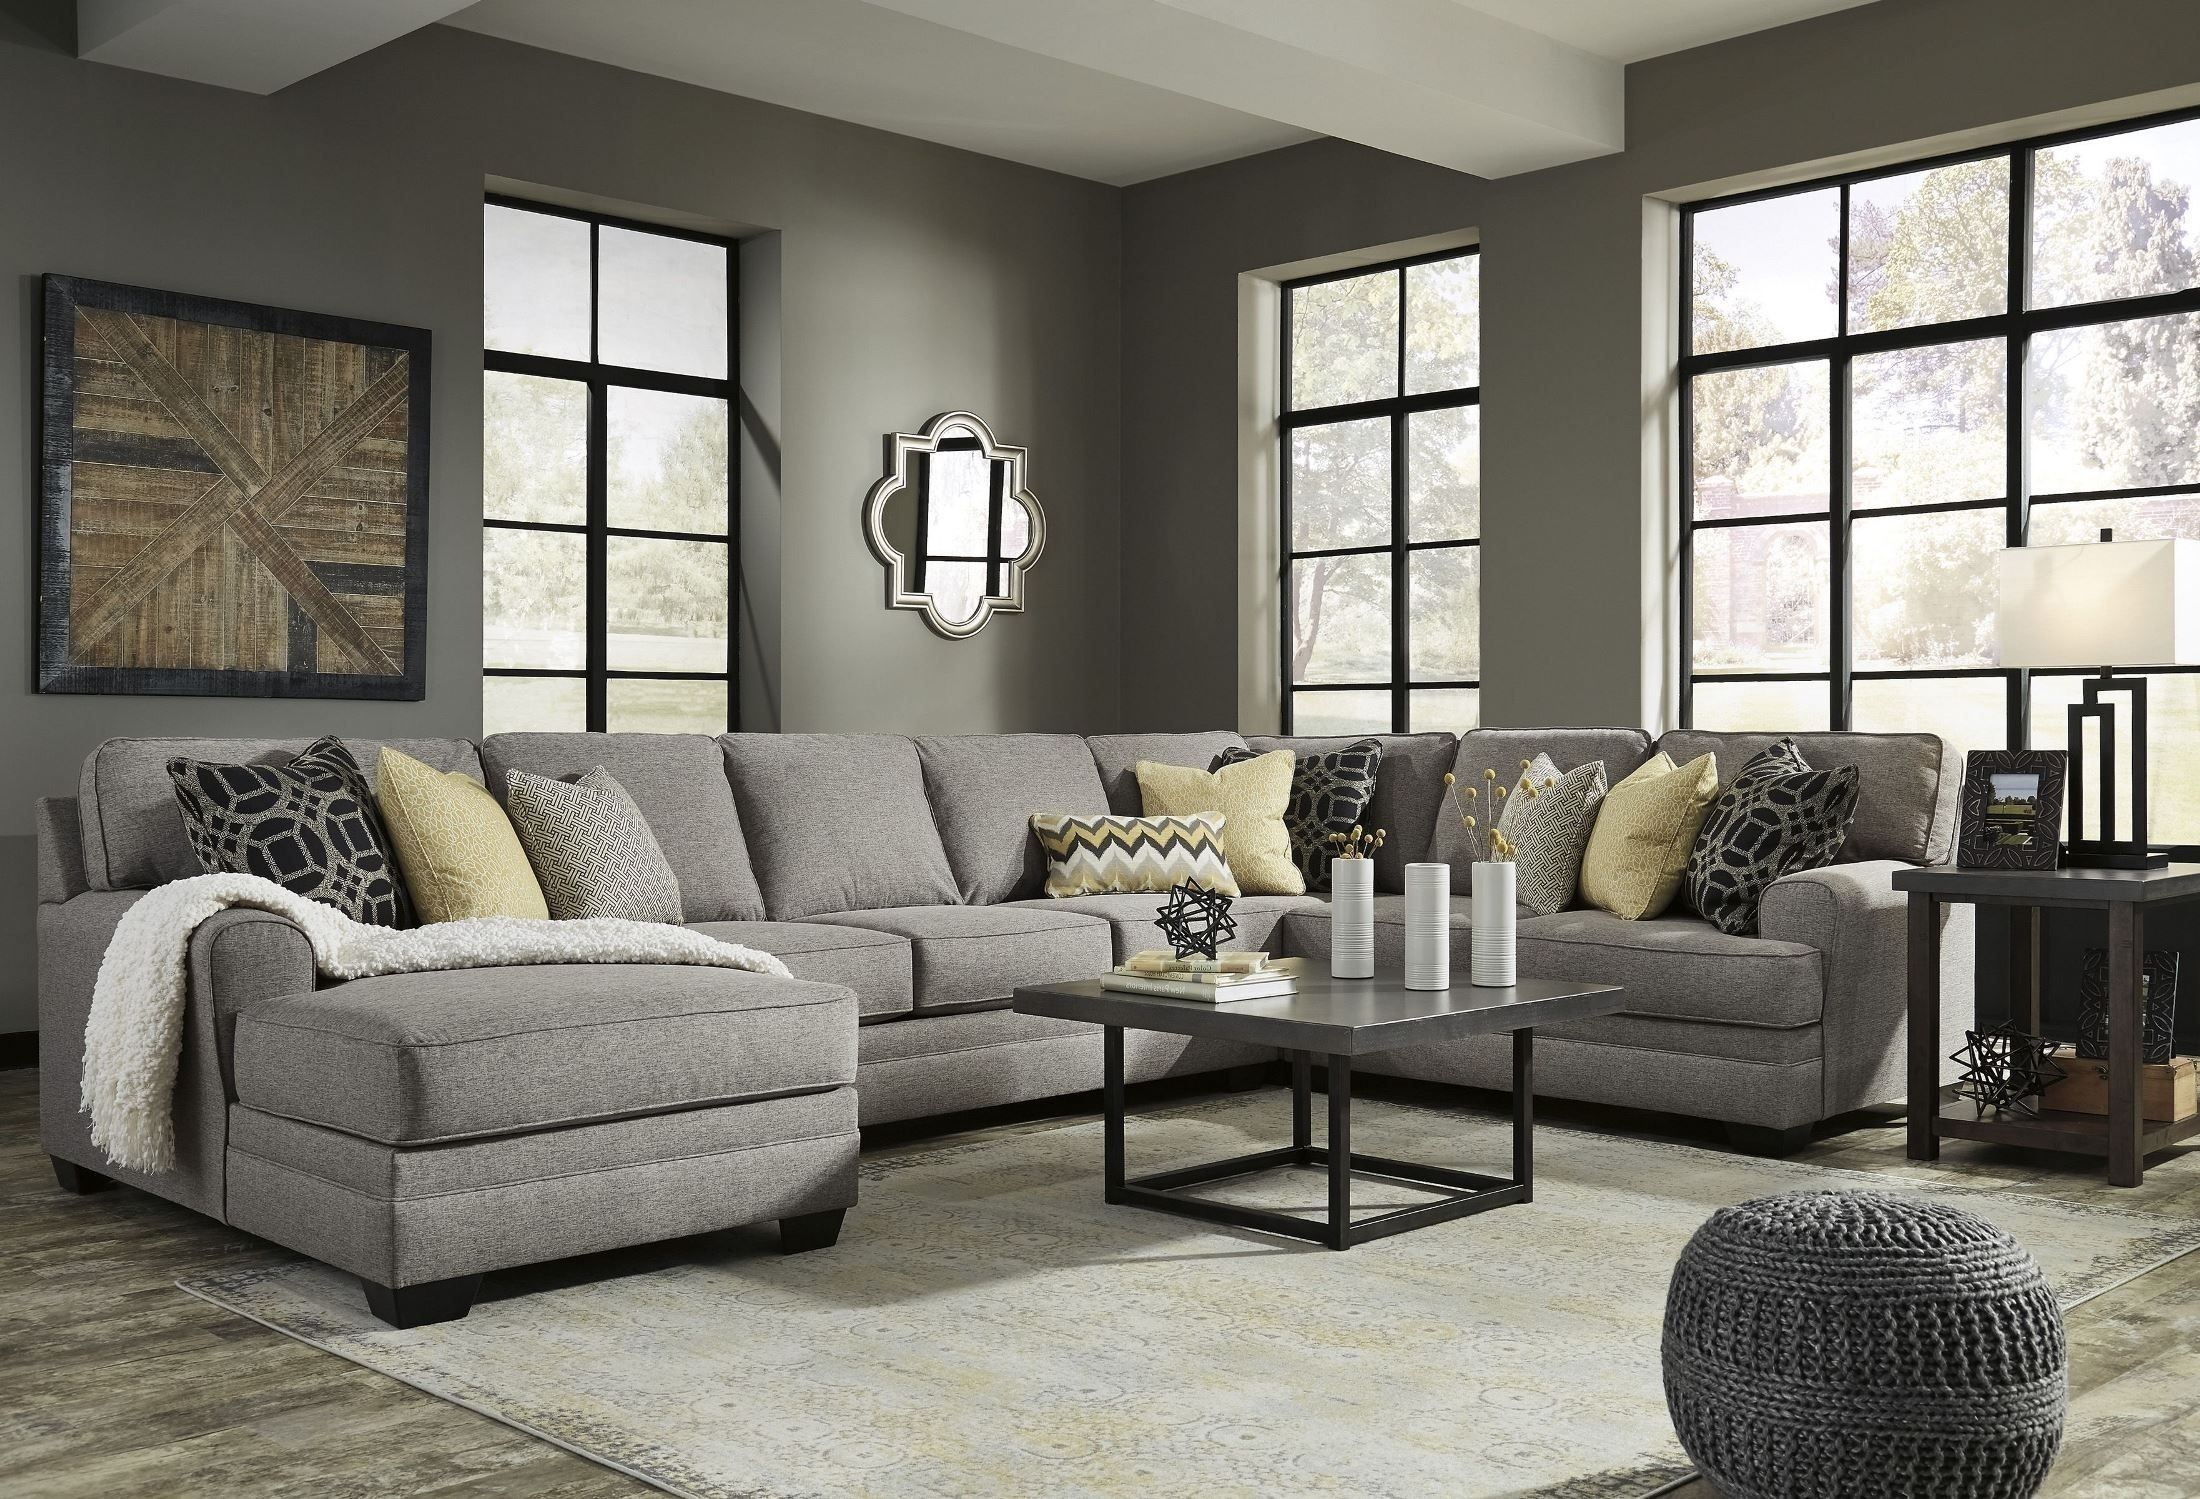 Laf Sectional Josephine 2 Piece W Sofa Living Spaces 222880 0 Jpg Regarding Arrowmask 2 Piece Sectionals With Raf Chaise (Image 10 of 25)